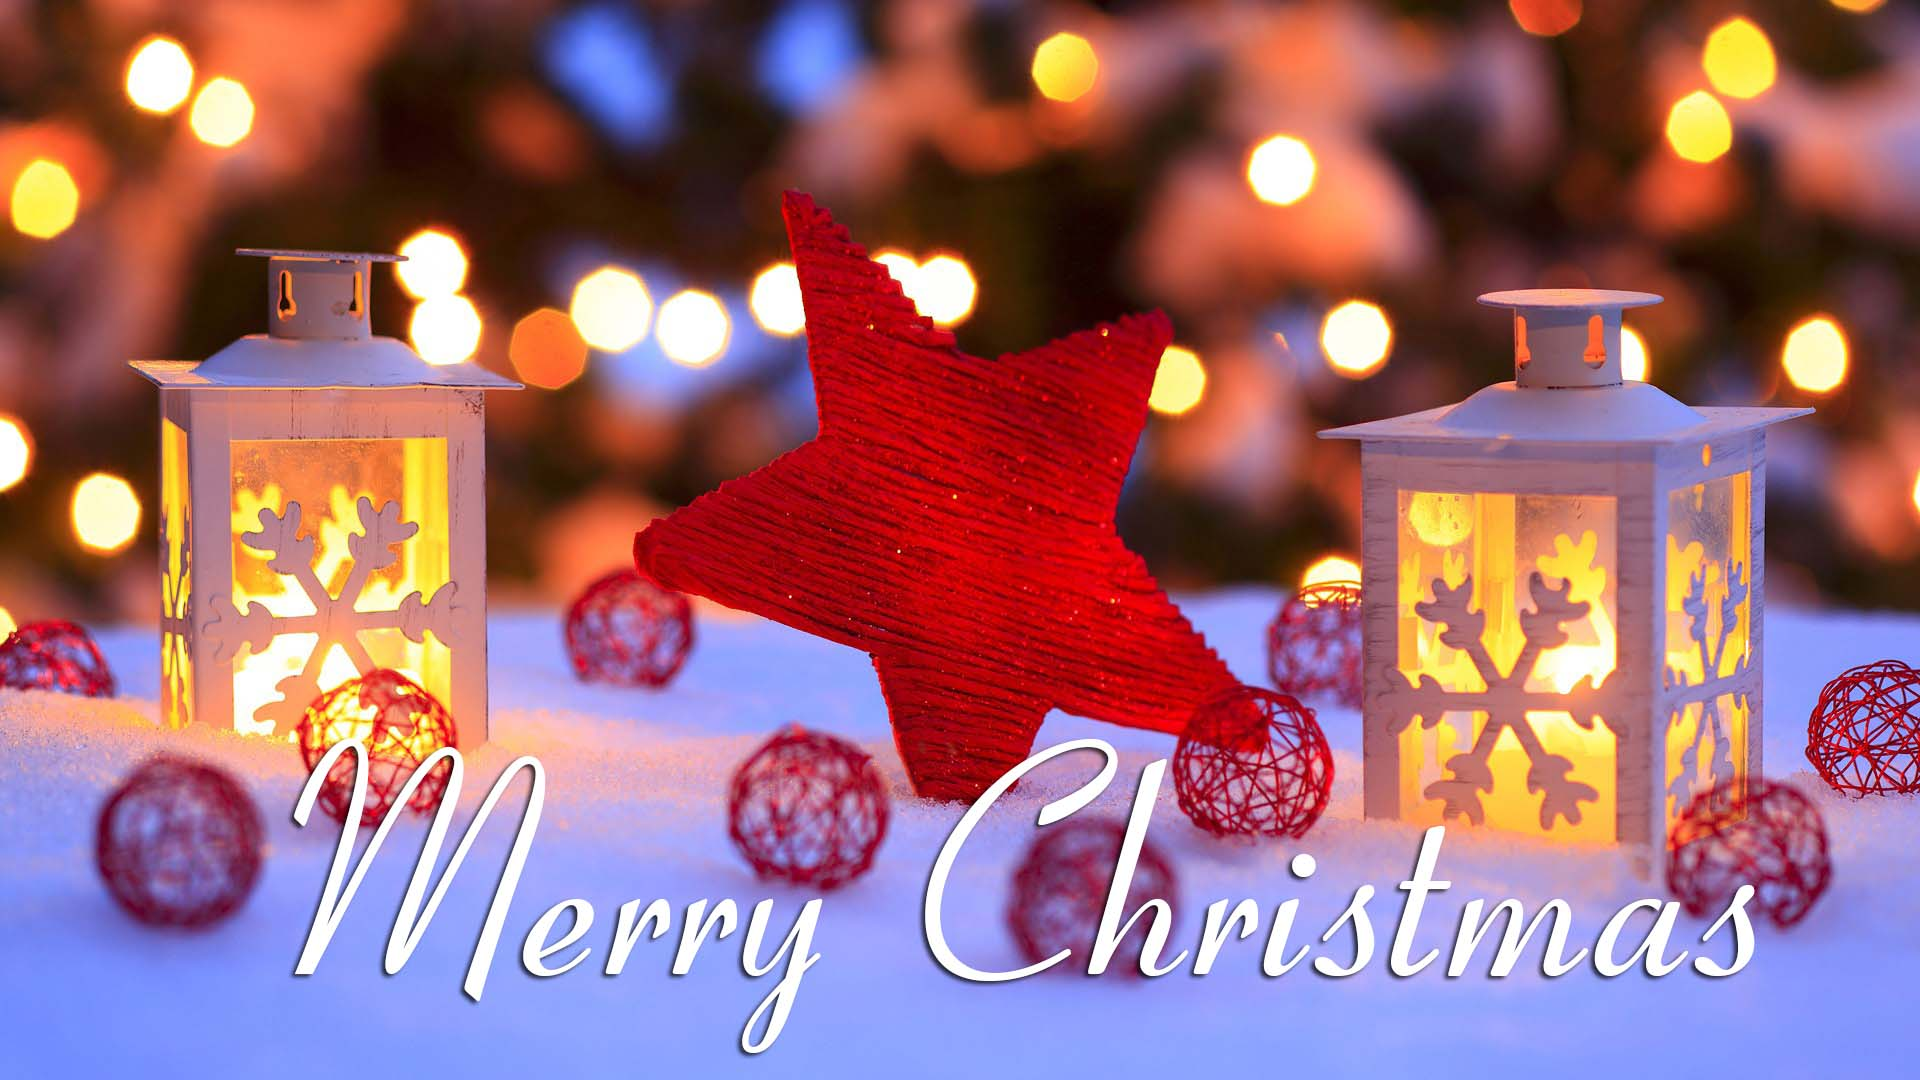 Merry christmas images 2016